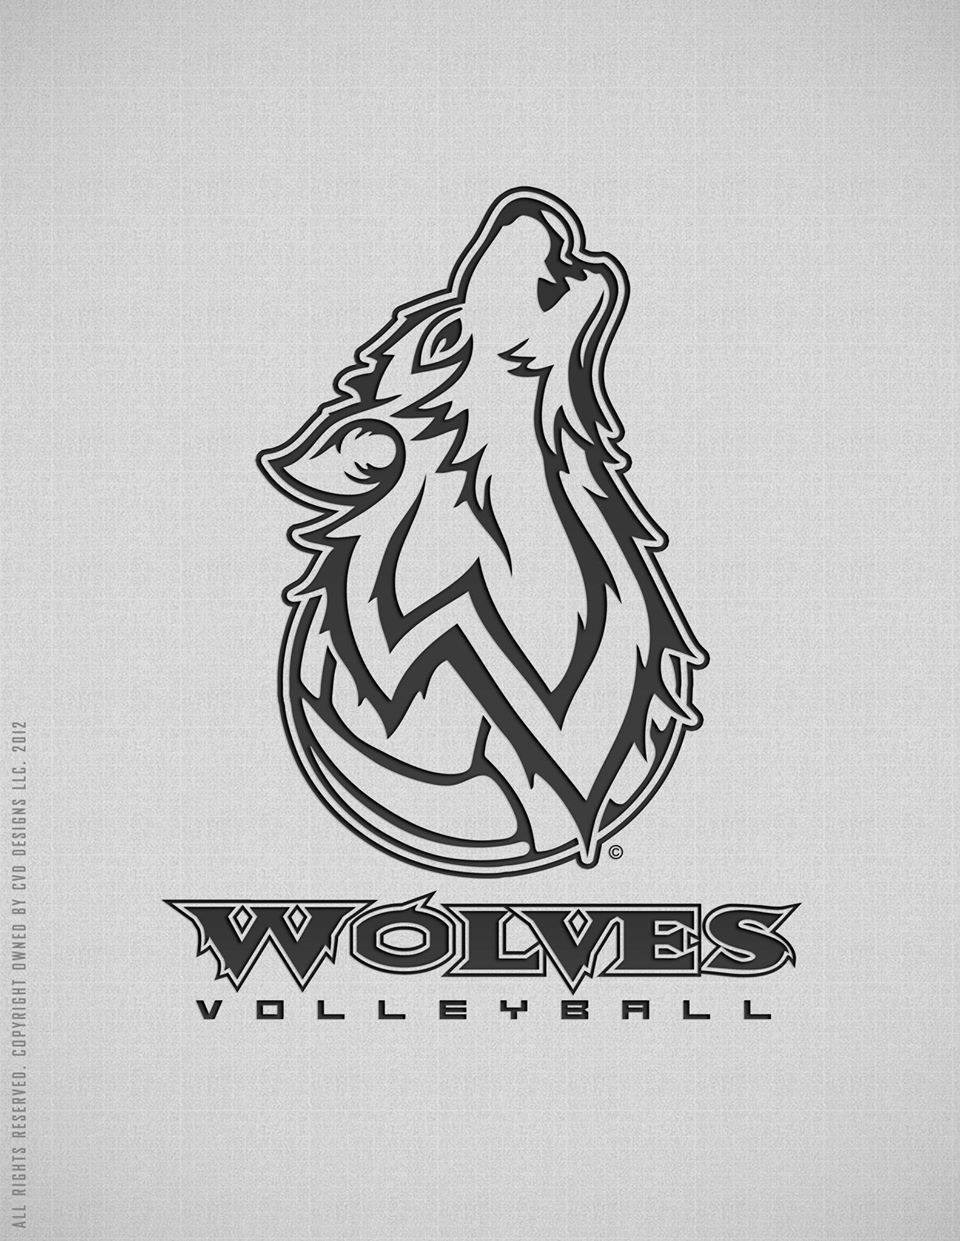 Wyoming Wolves Volleyball Logo Design Volleyball Shirt Designs